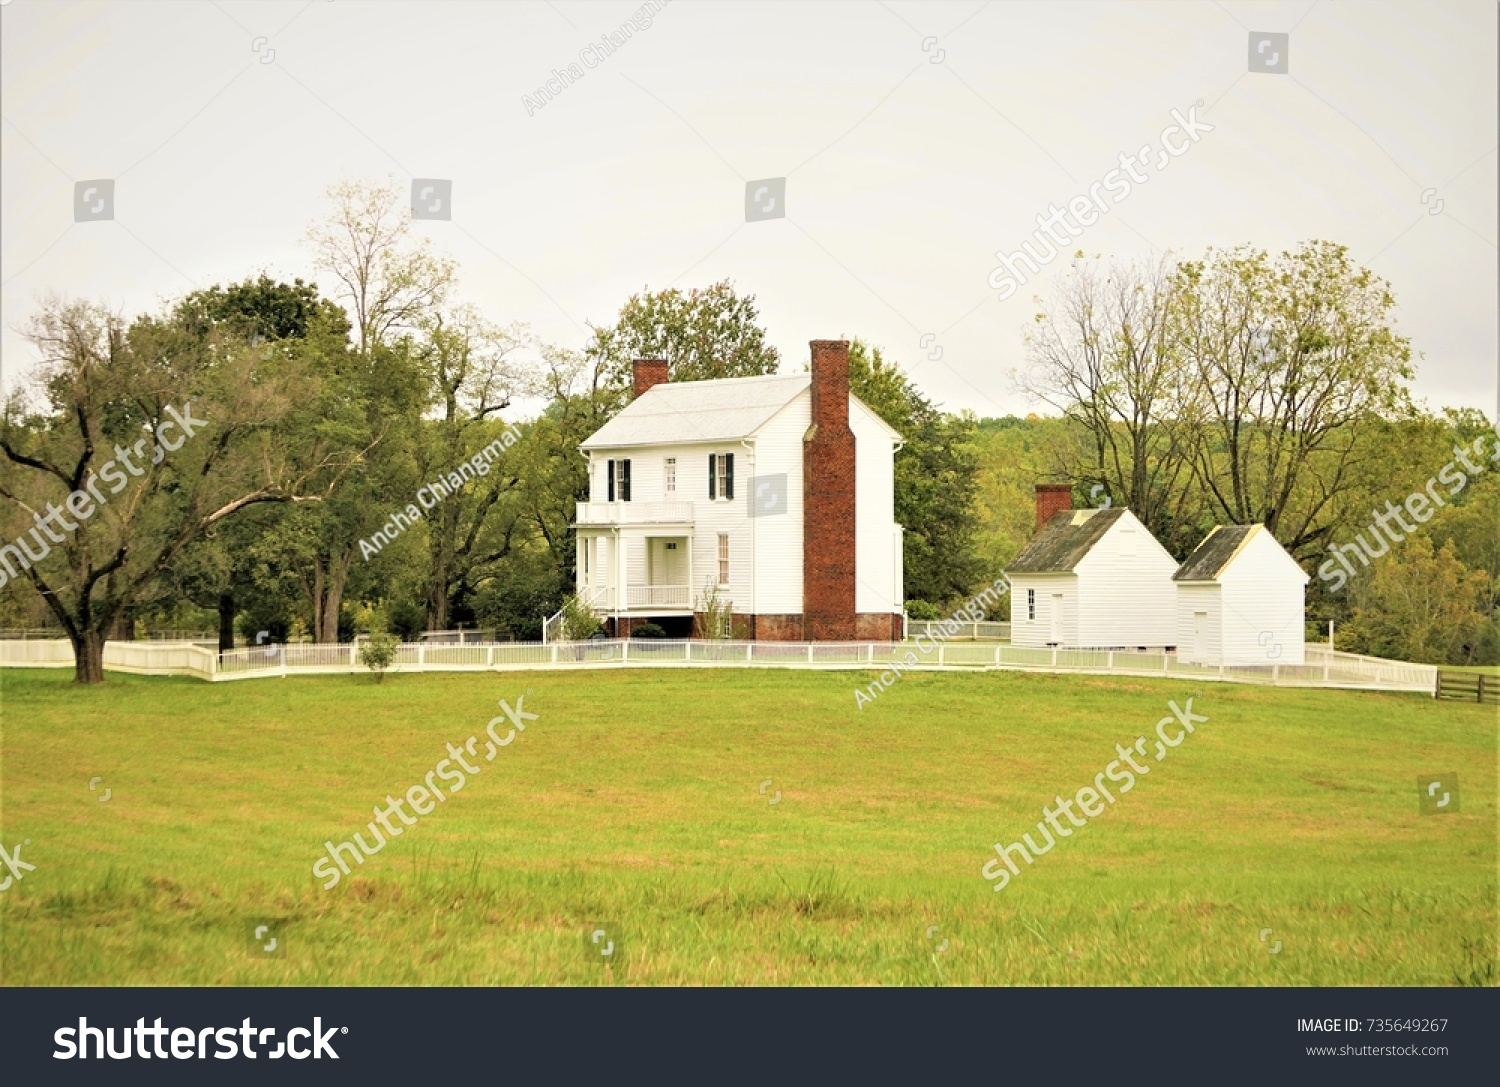 Beautiful Antique House Nice Garden Trees Stock Photo Edit Now